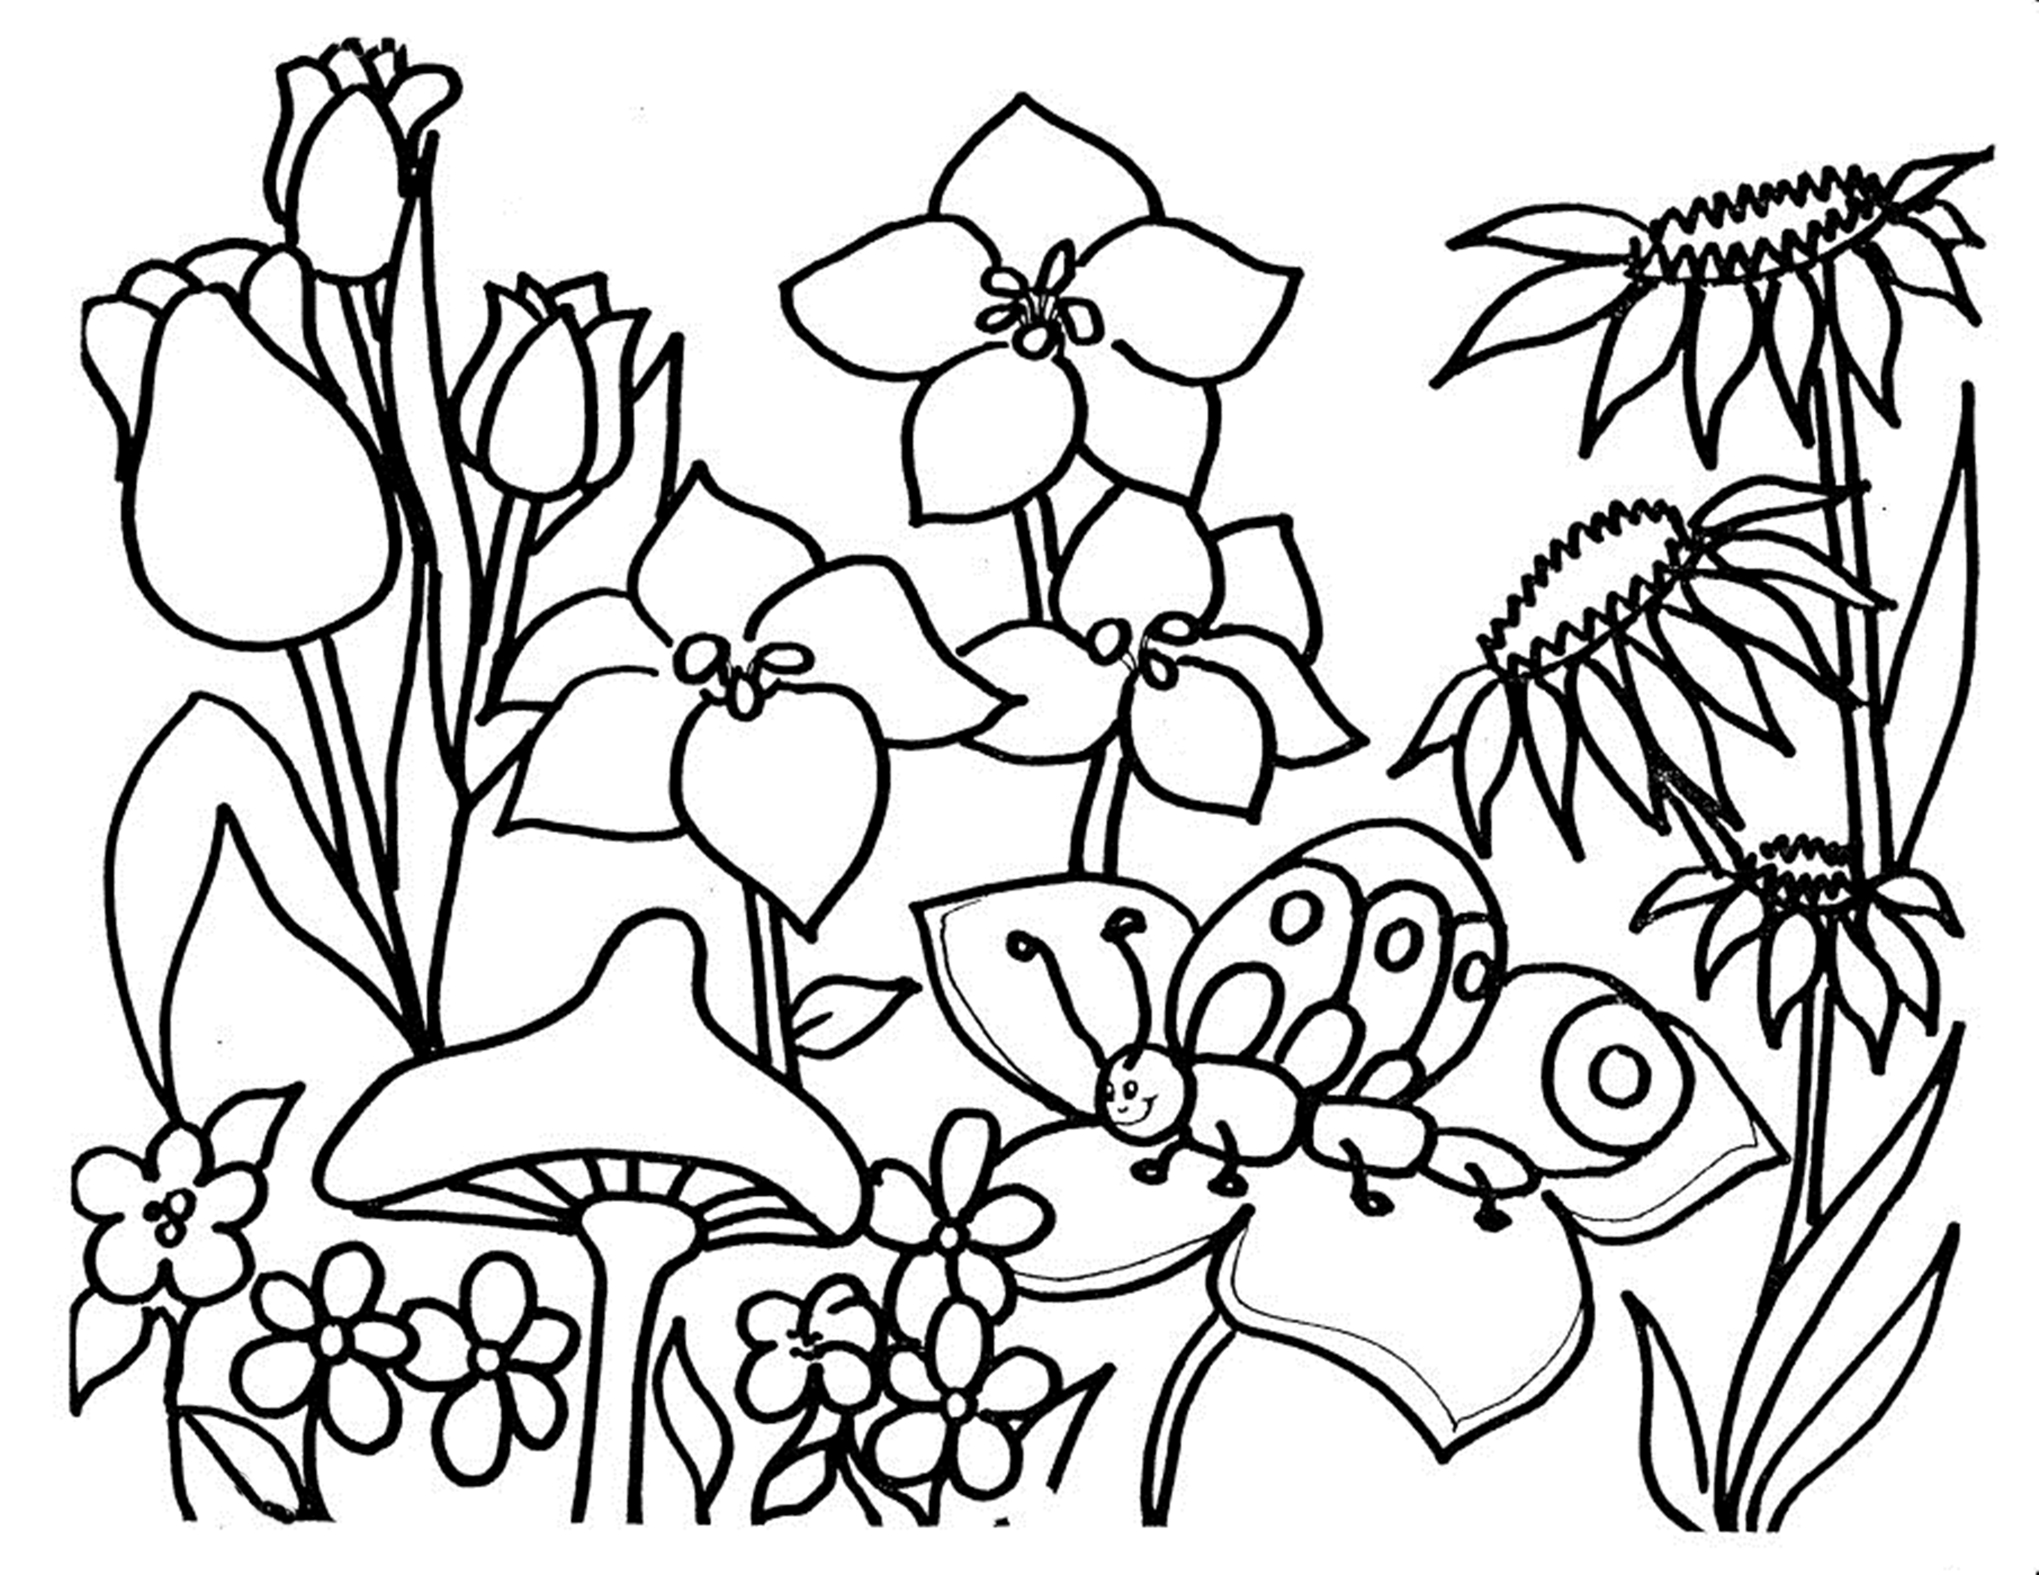 picture of flowers to colour free printable flower coloring pages for kids best colour picture to flowers of